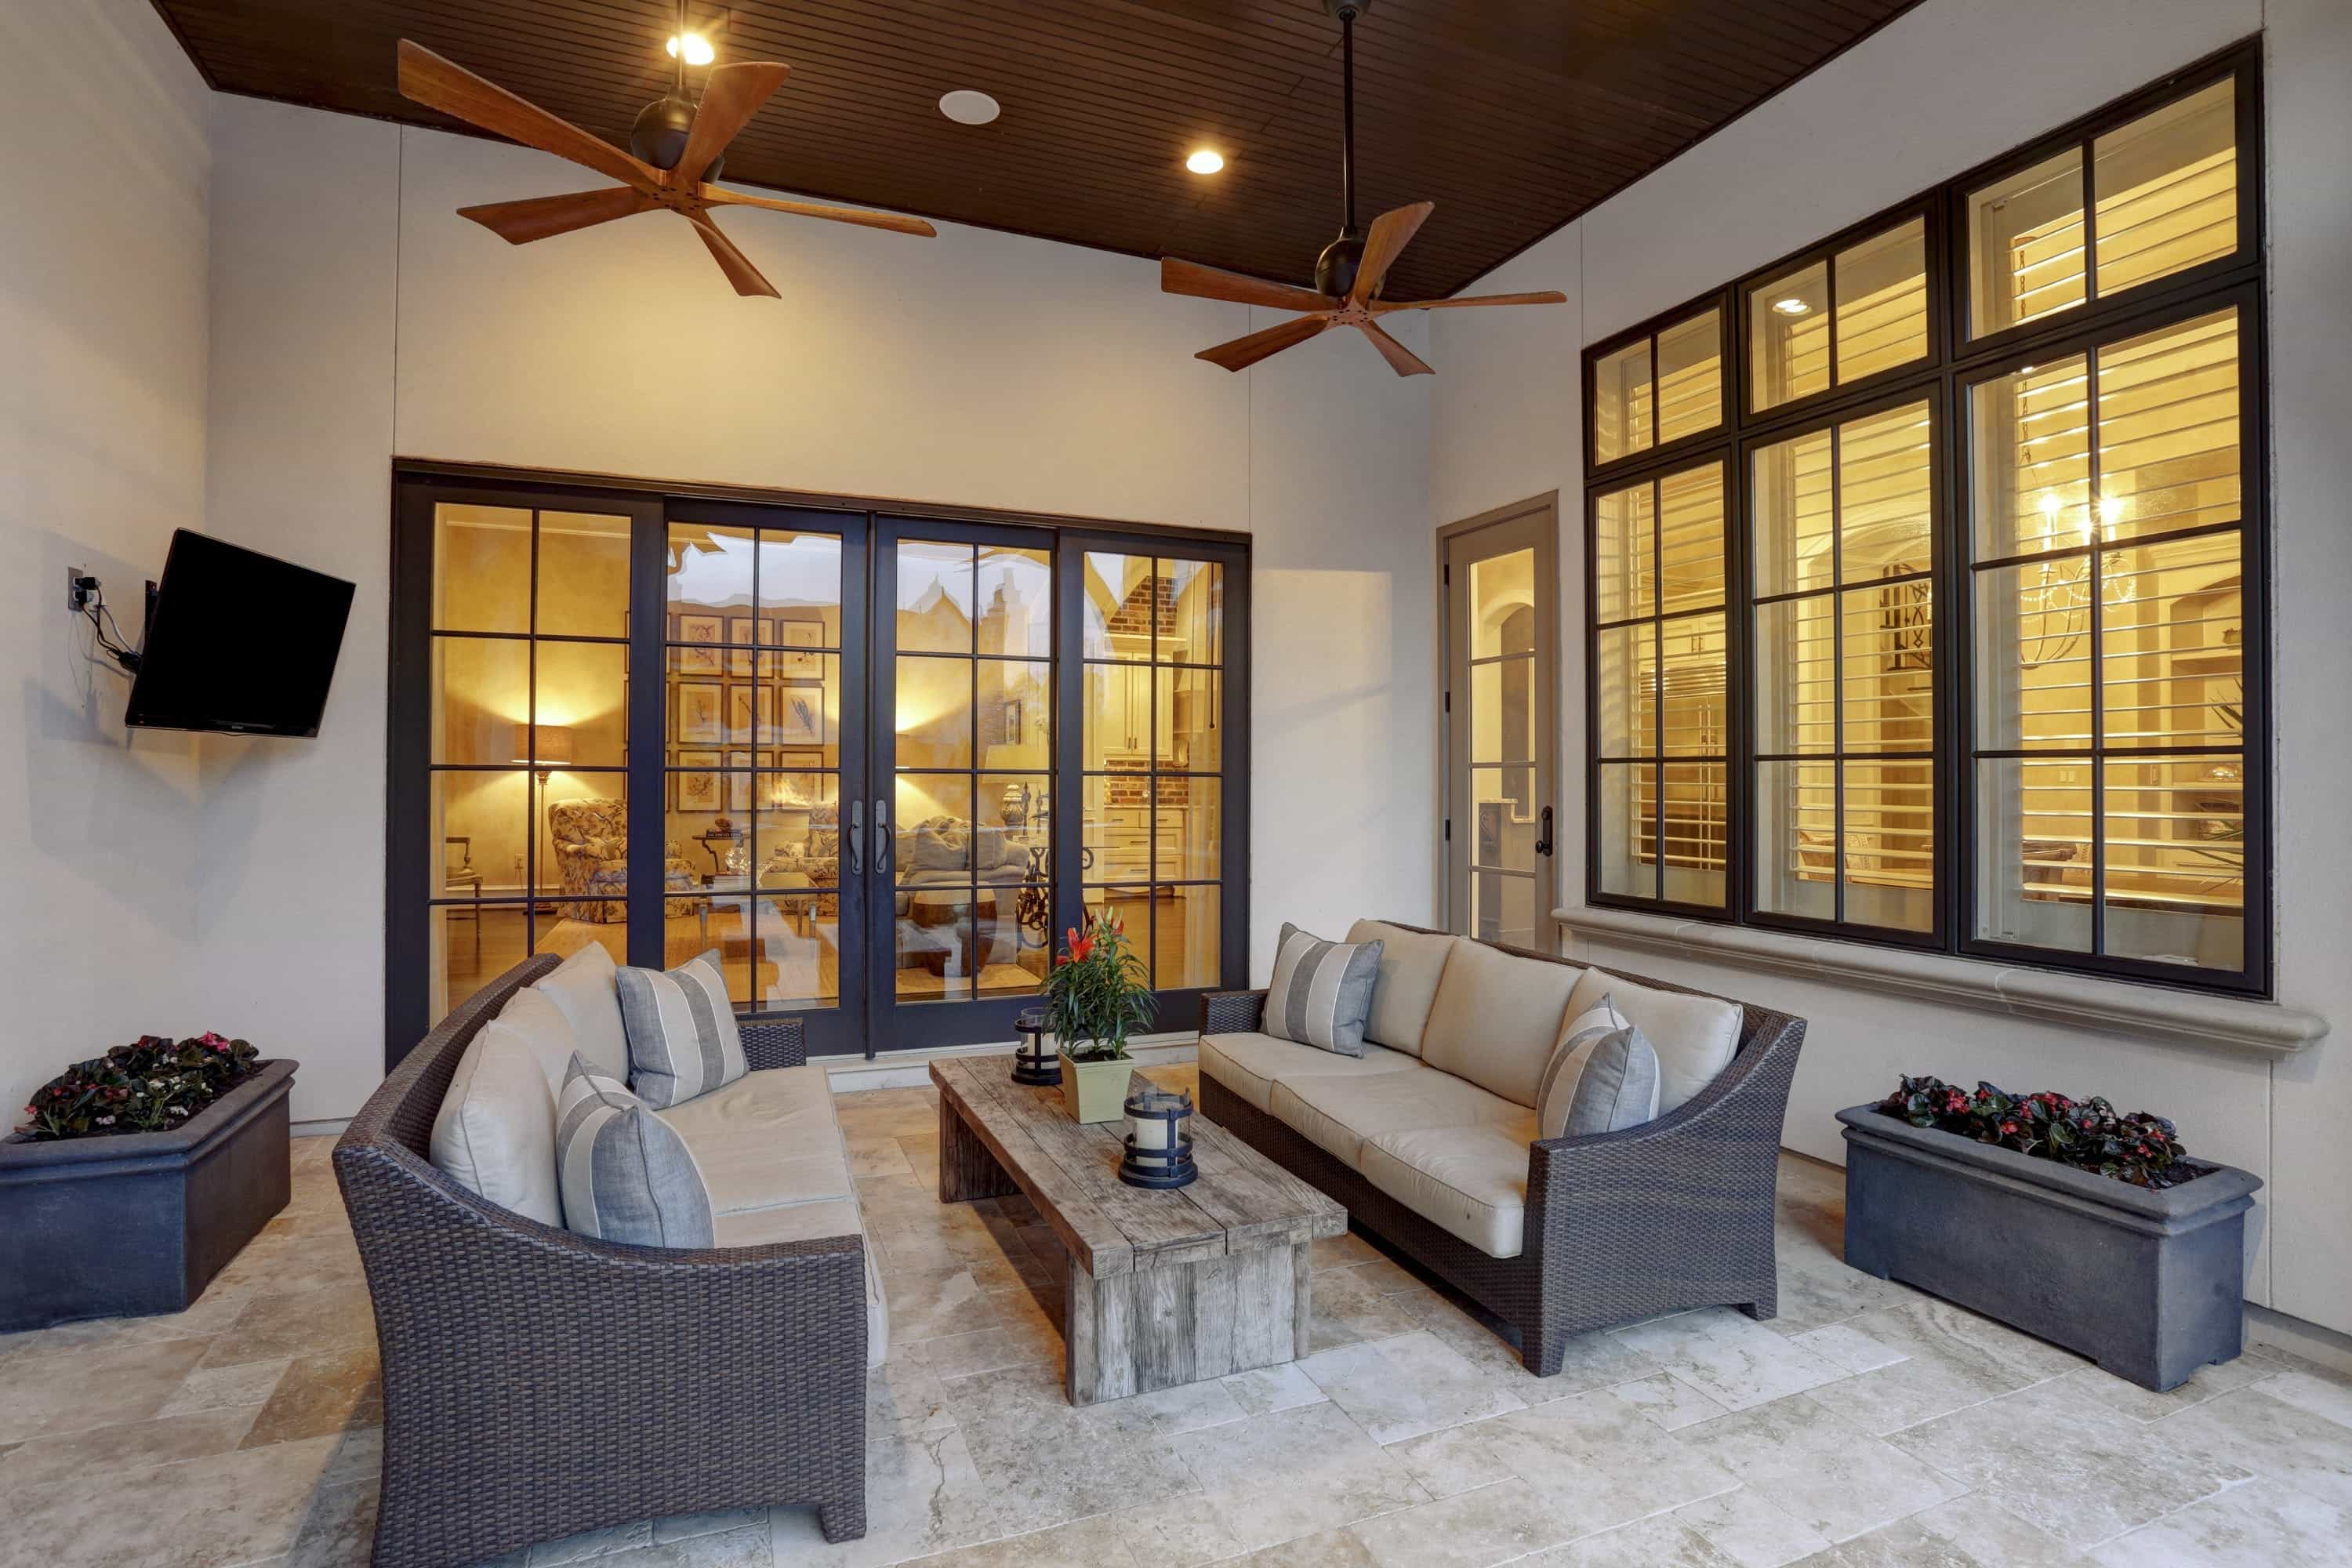 Outdoor Sitting Area With Sliding Glass Doors (Image 22 of 27)